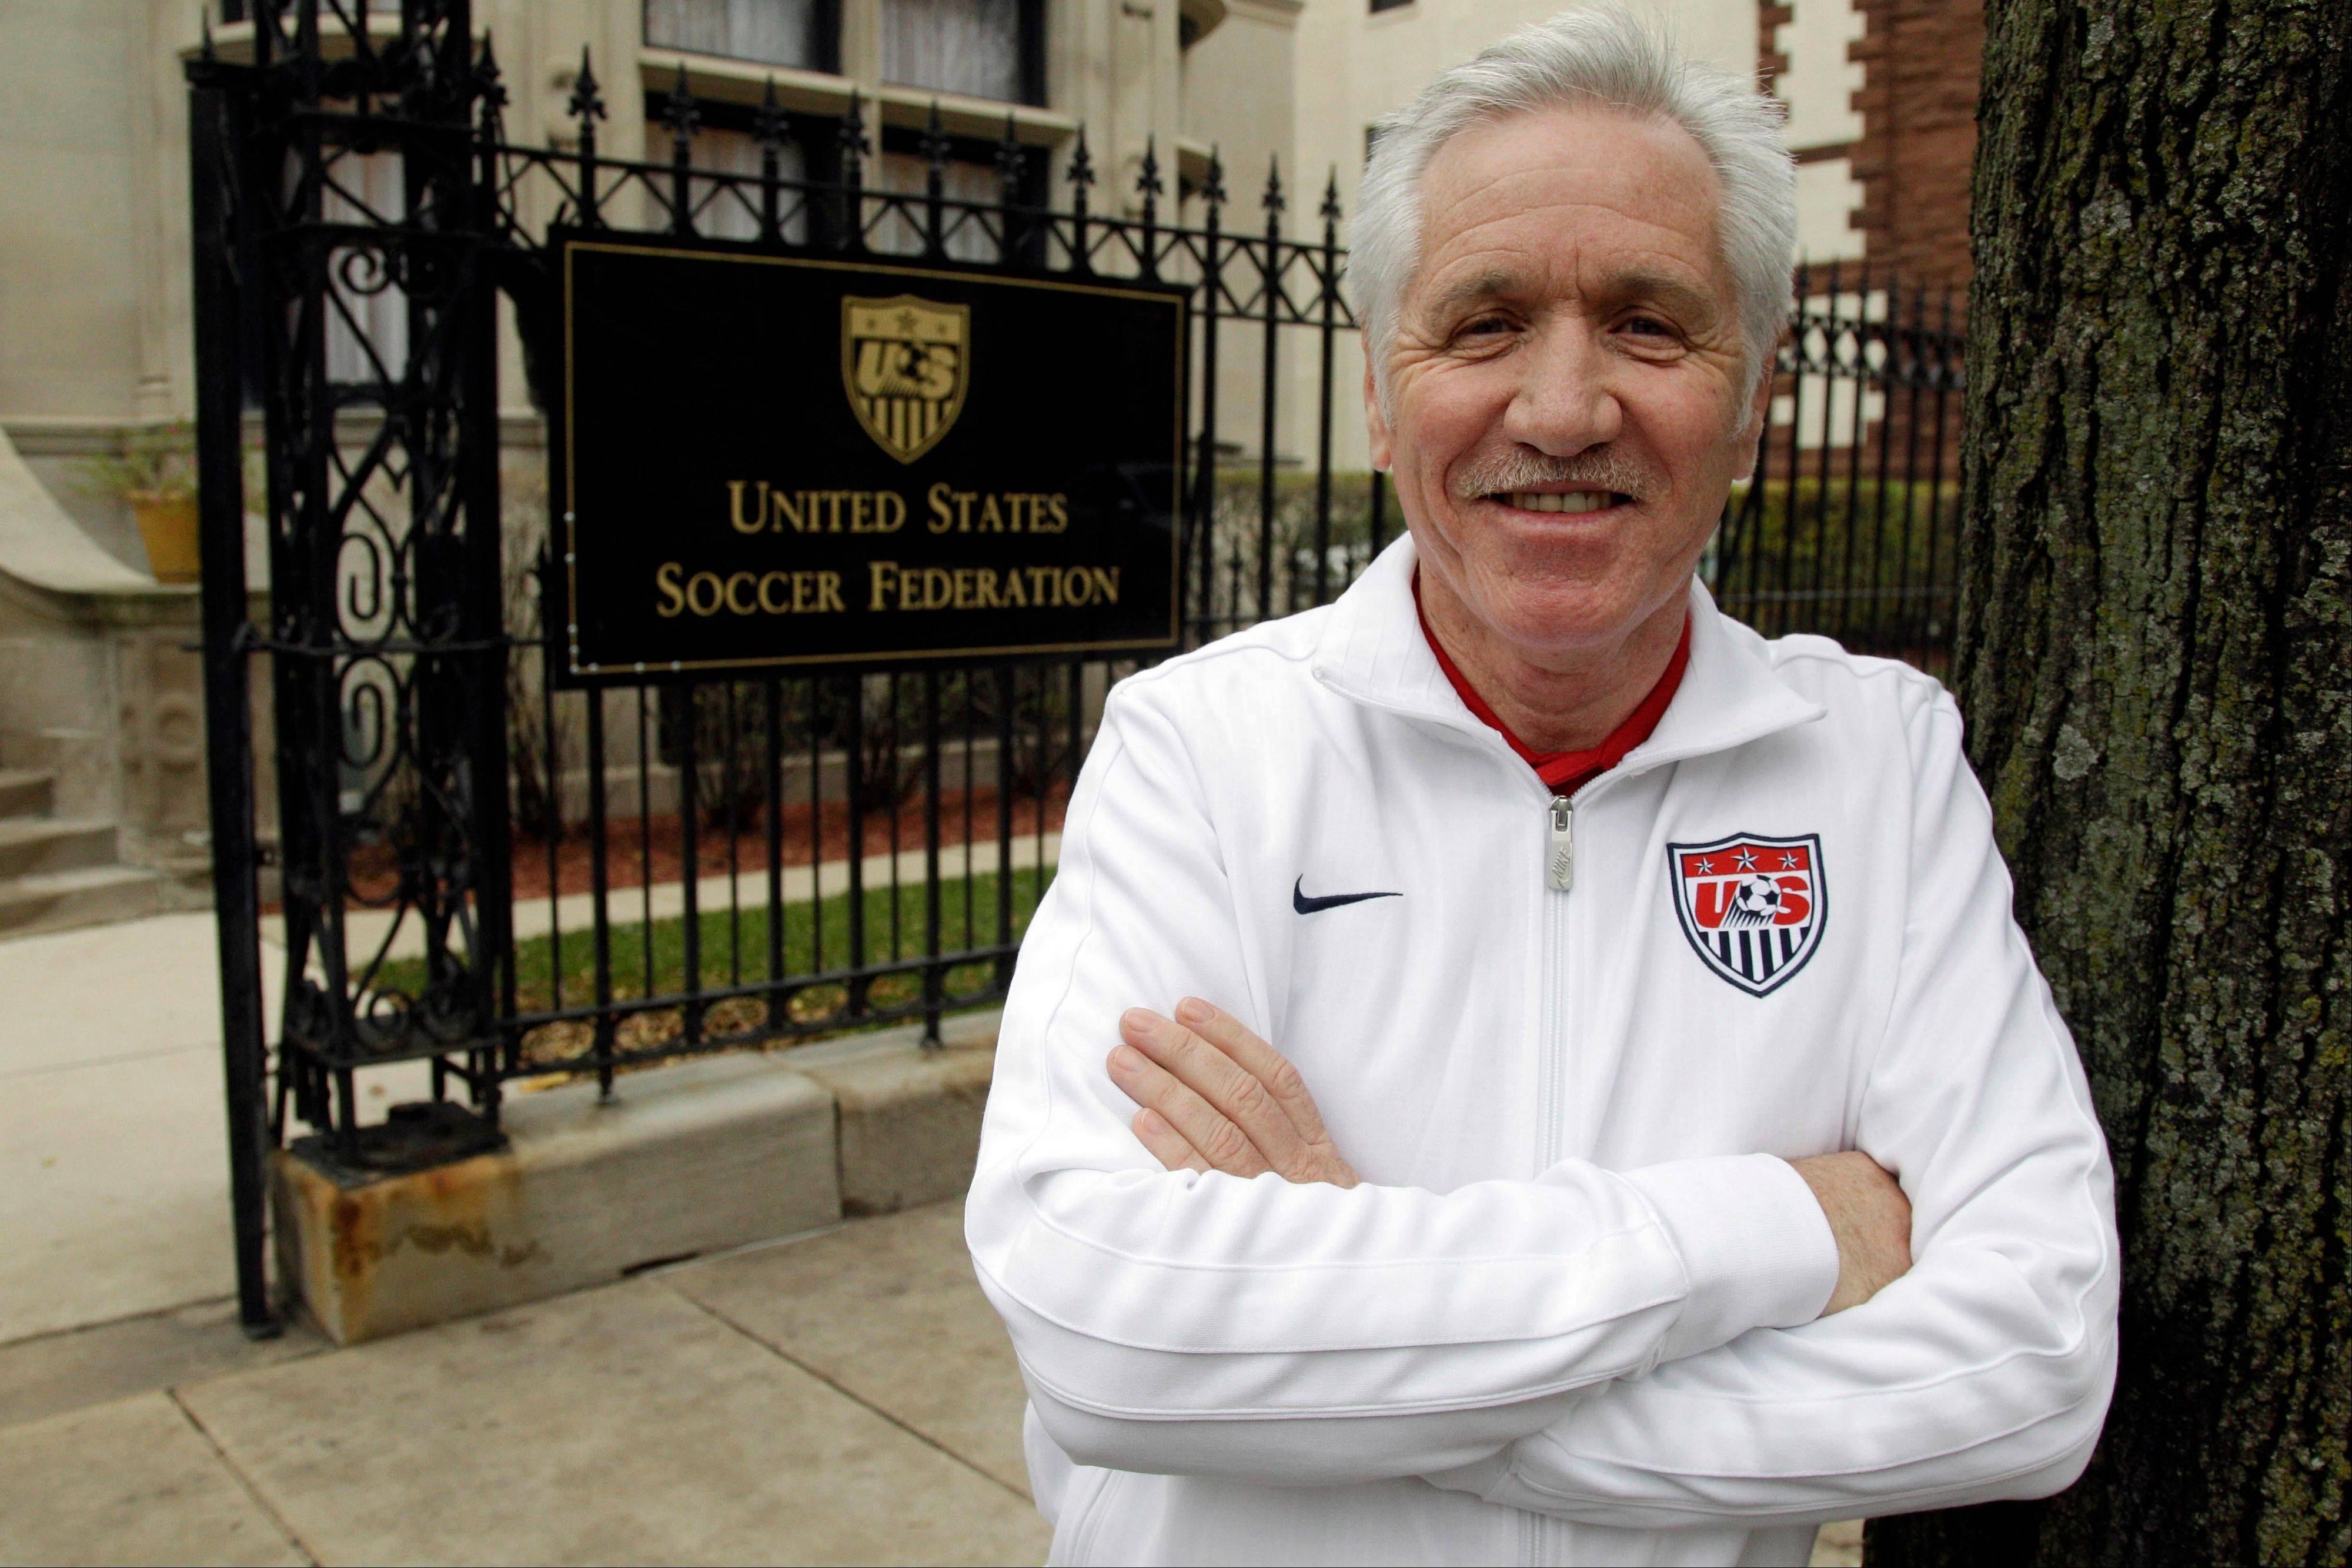 Tom Sermanni was hired Tuesday to replace Pia Sundhage, who led the Americans to back-to-back Olympic gold medals and their first World Cup final in 12 years. Sermanni has spent the last eight years as Australia's coach, taking the Matildas to the quarterfinals of the last two Women's World Cups.